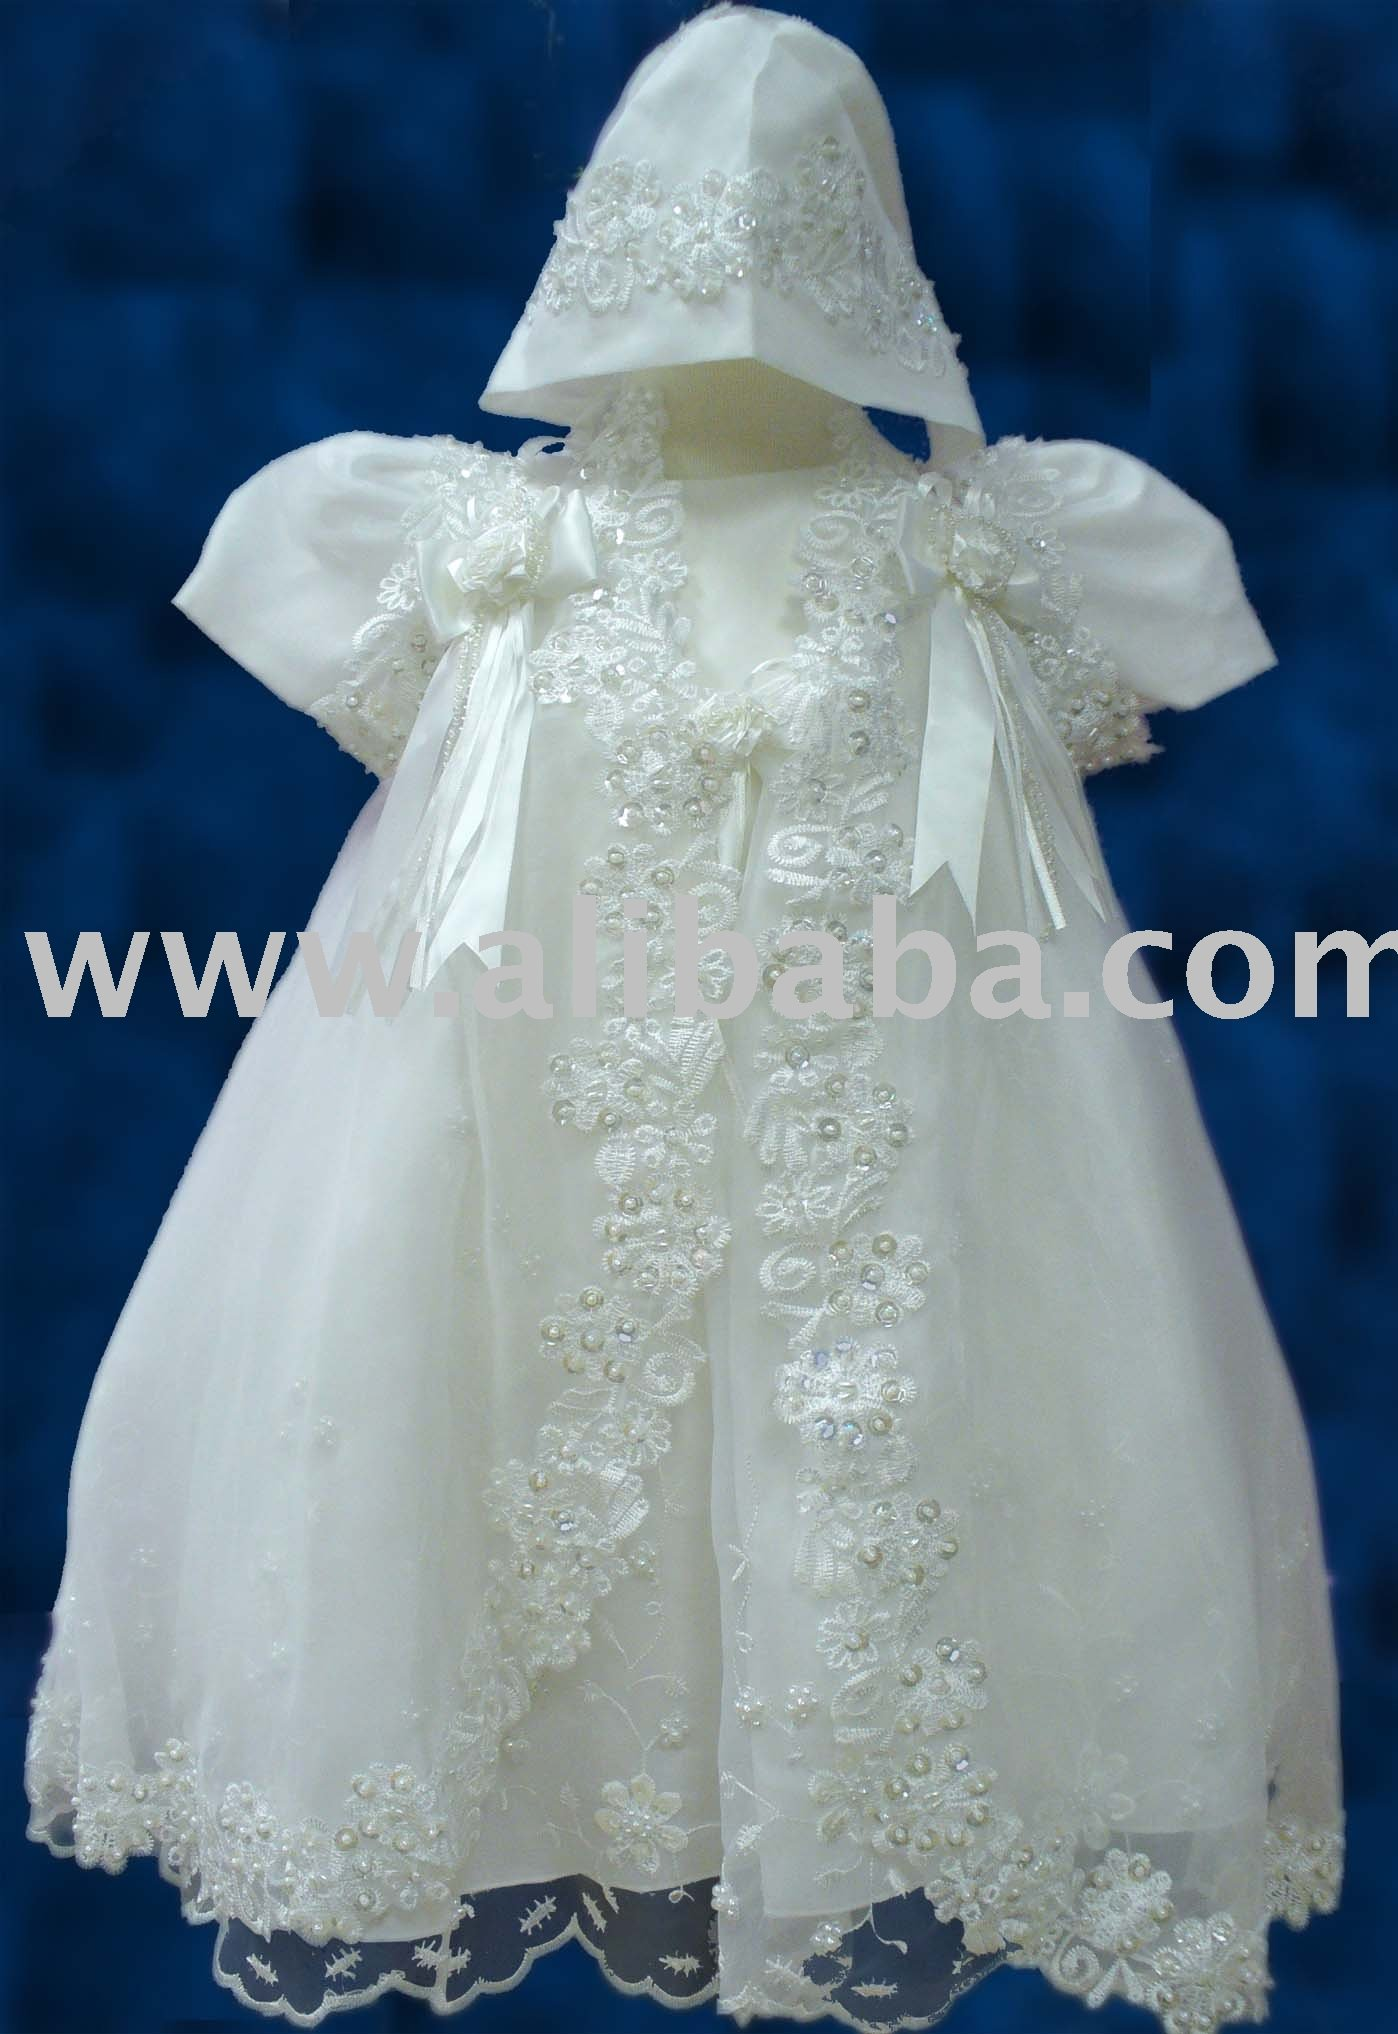 Baptism Gift Christening, Baptism Gift Christening Suppliers and ...